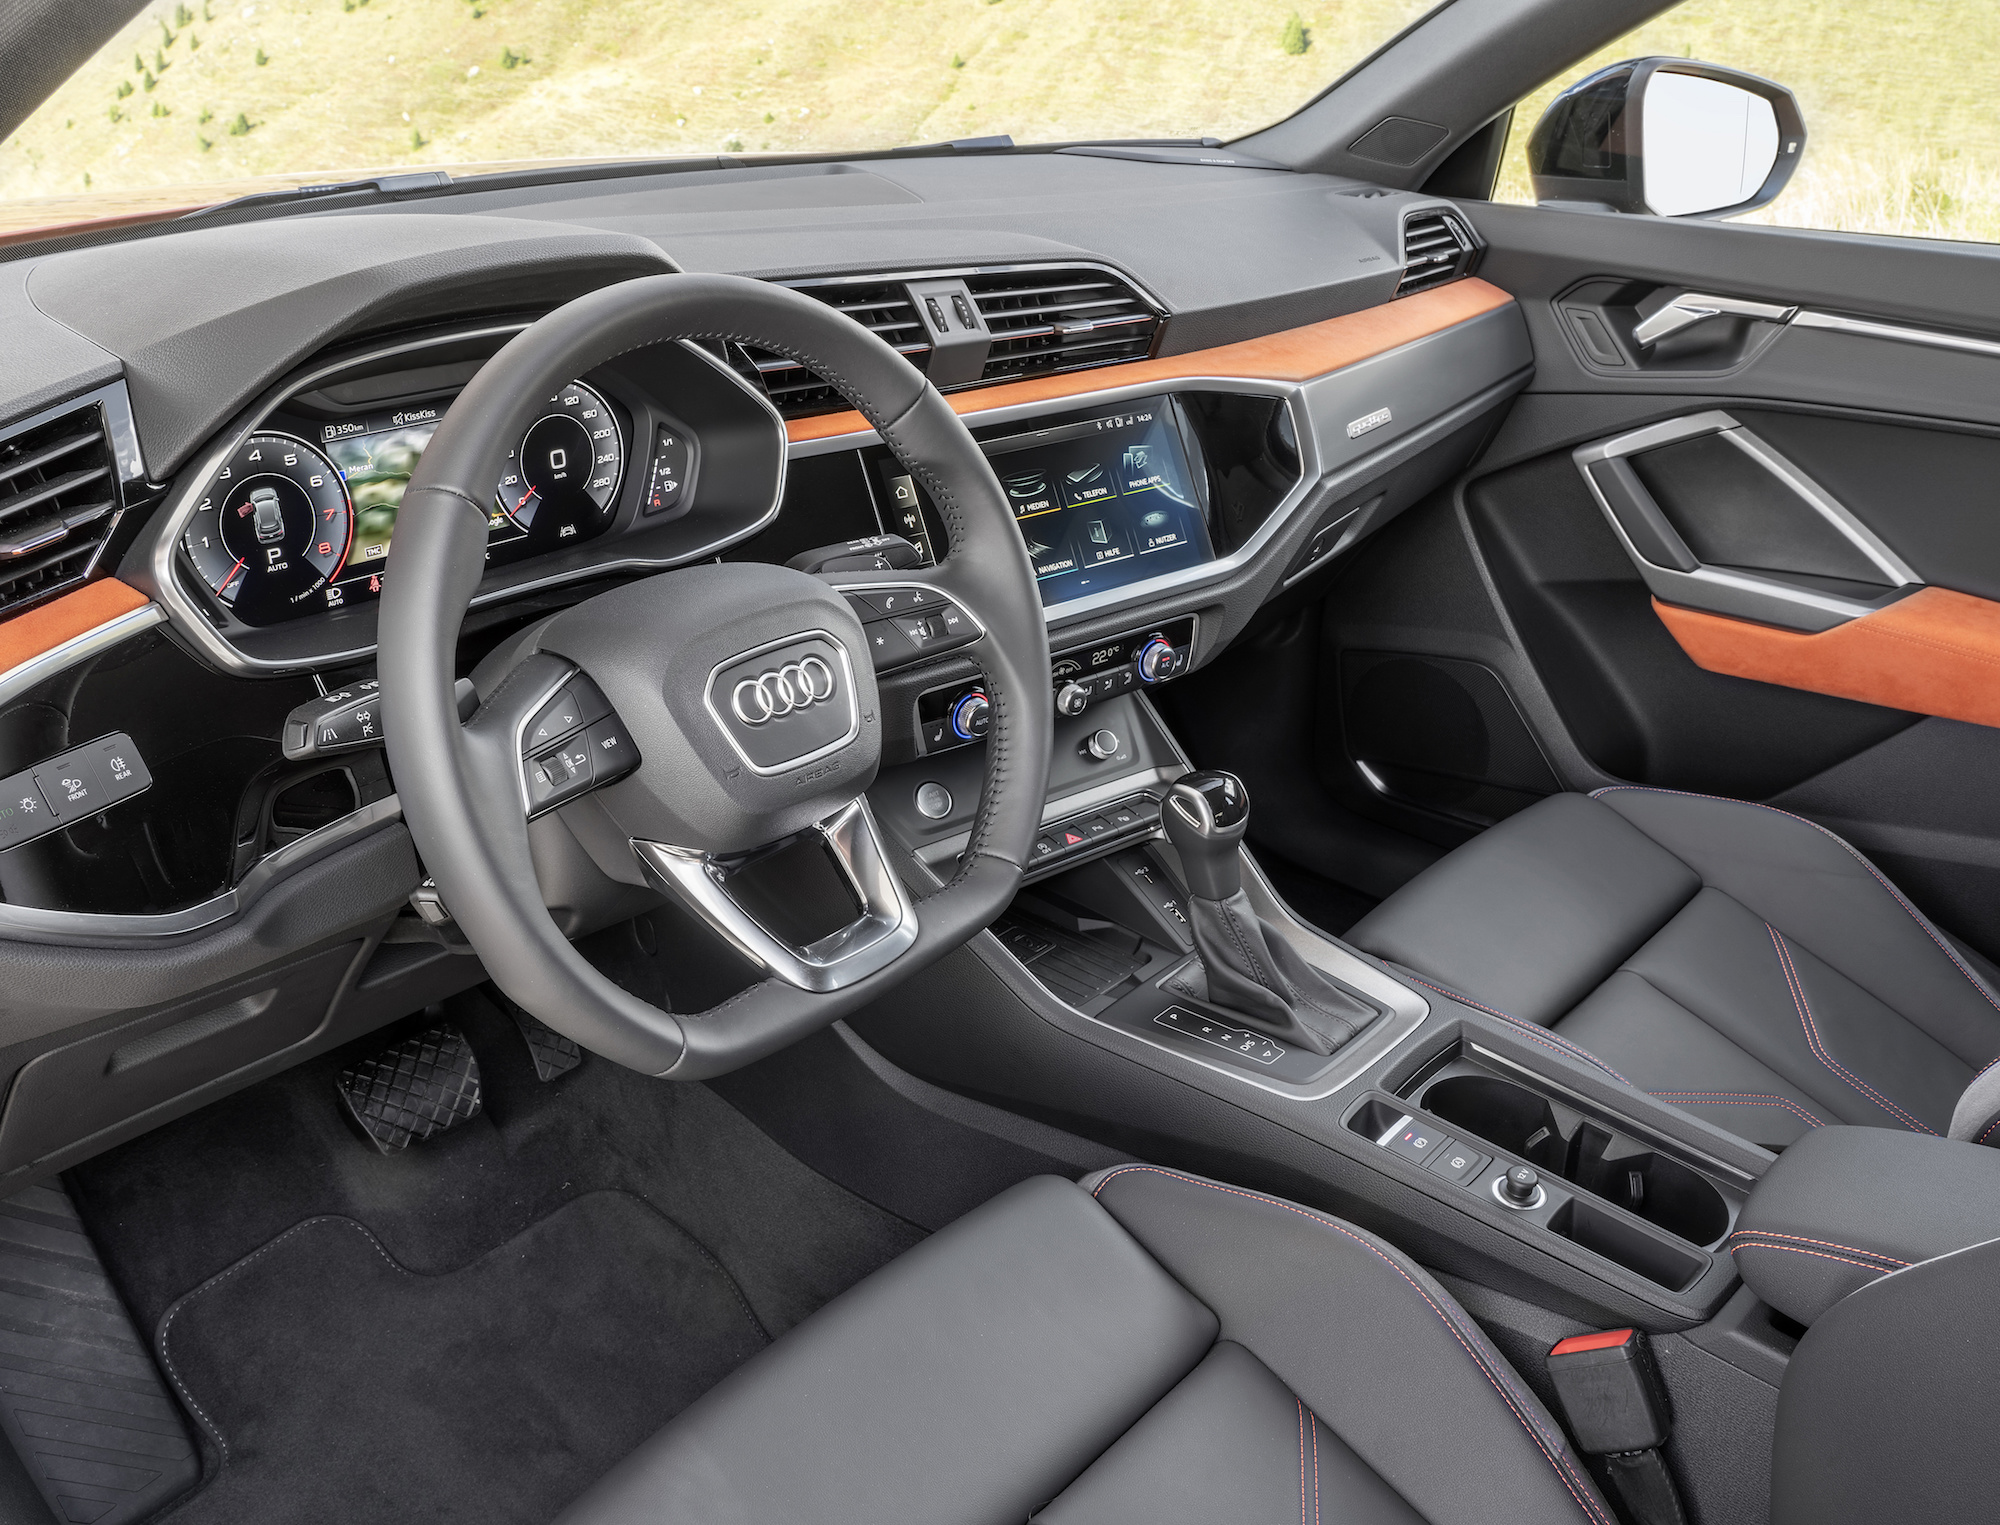 Audi Q3 Orange dashboard